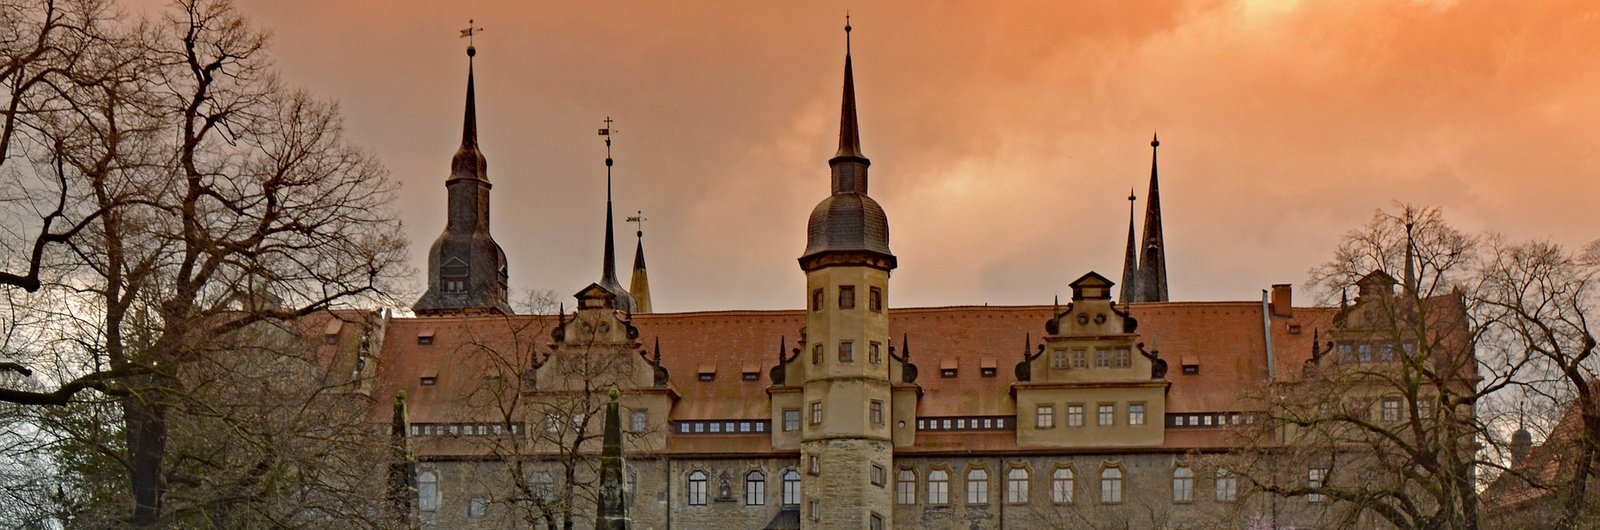 merseburg city header